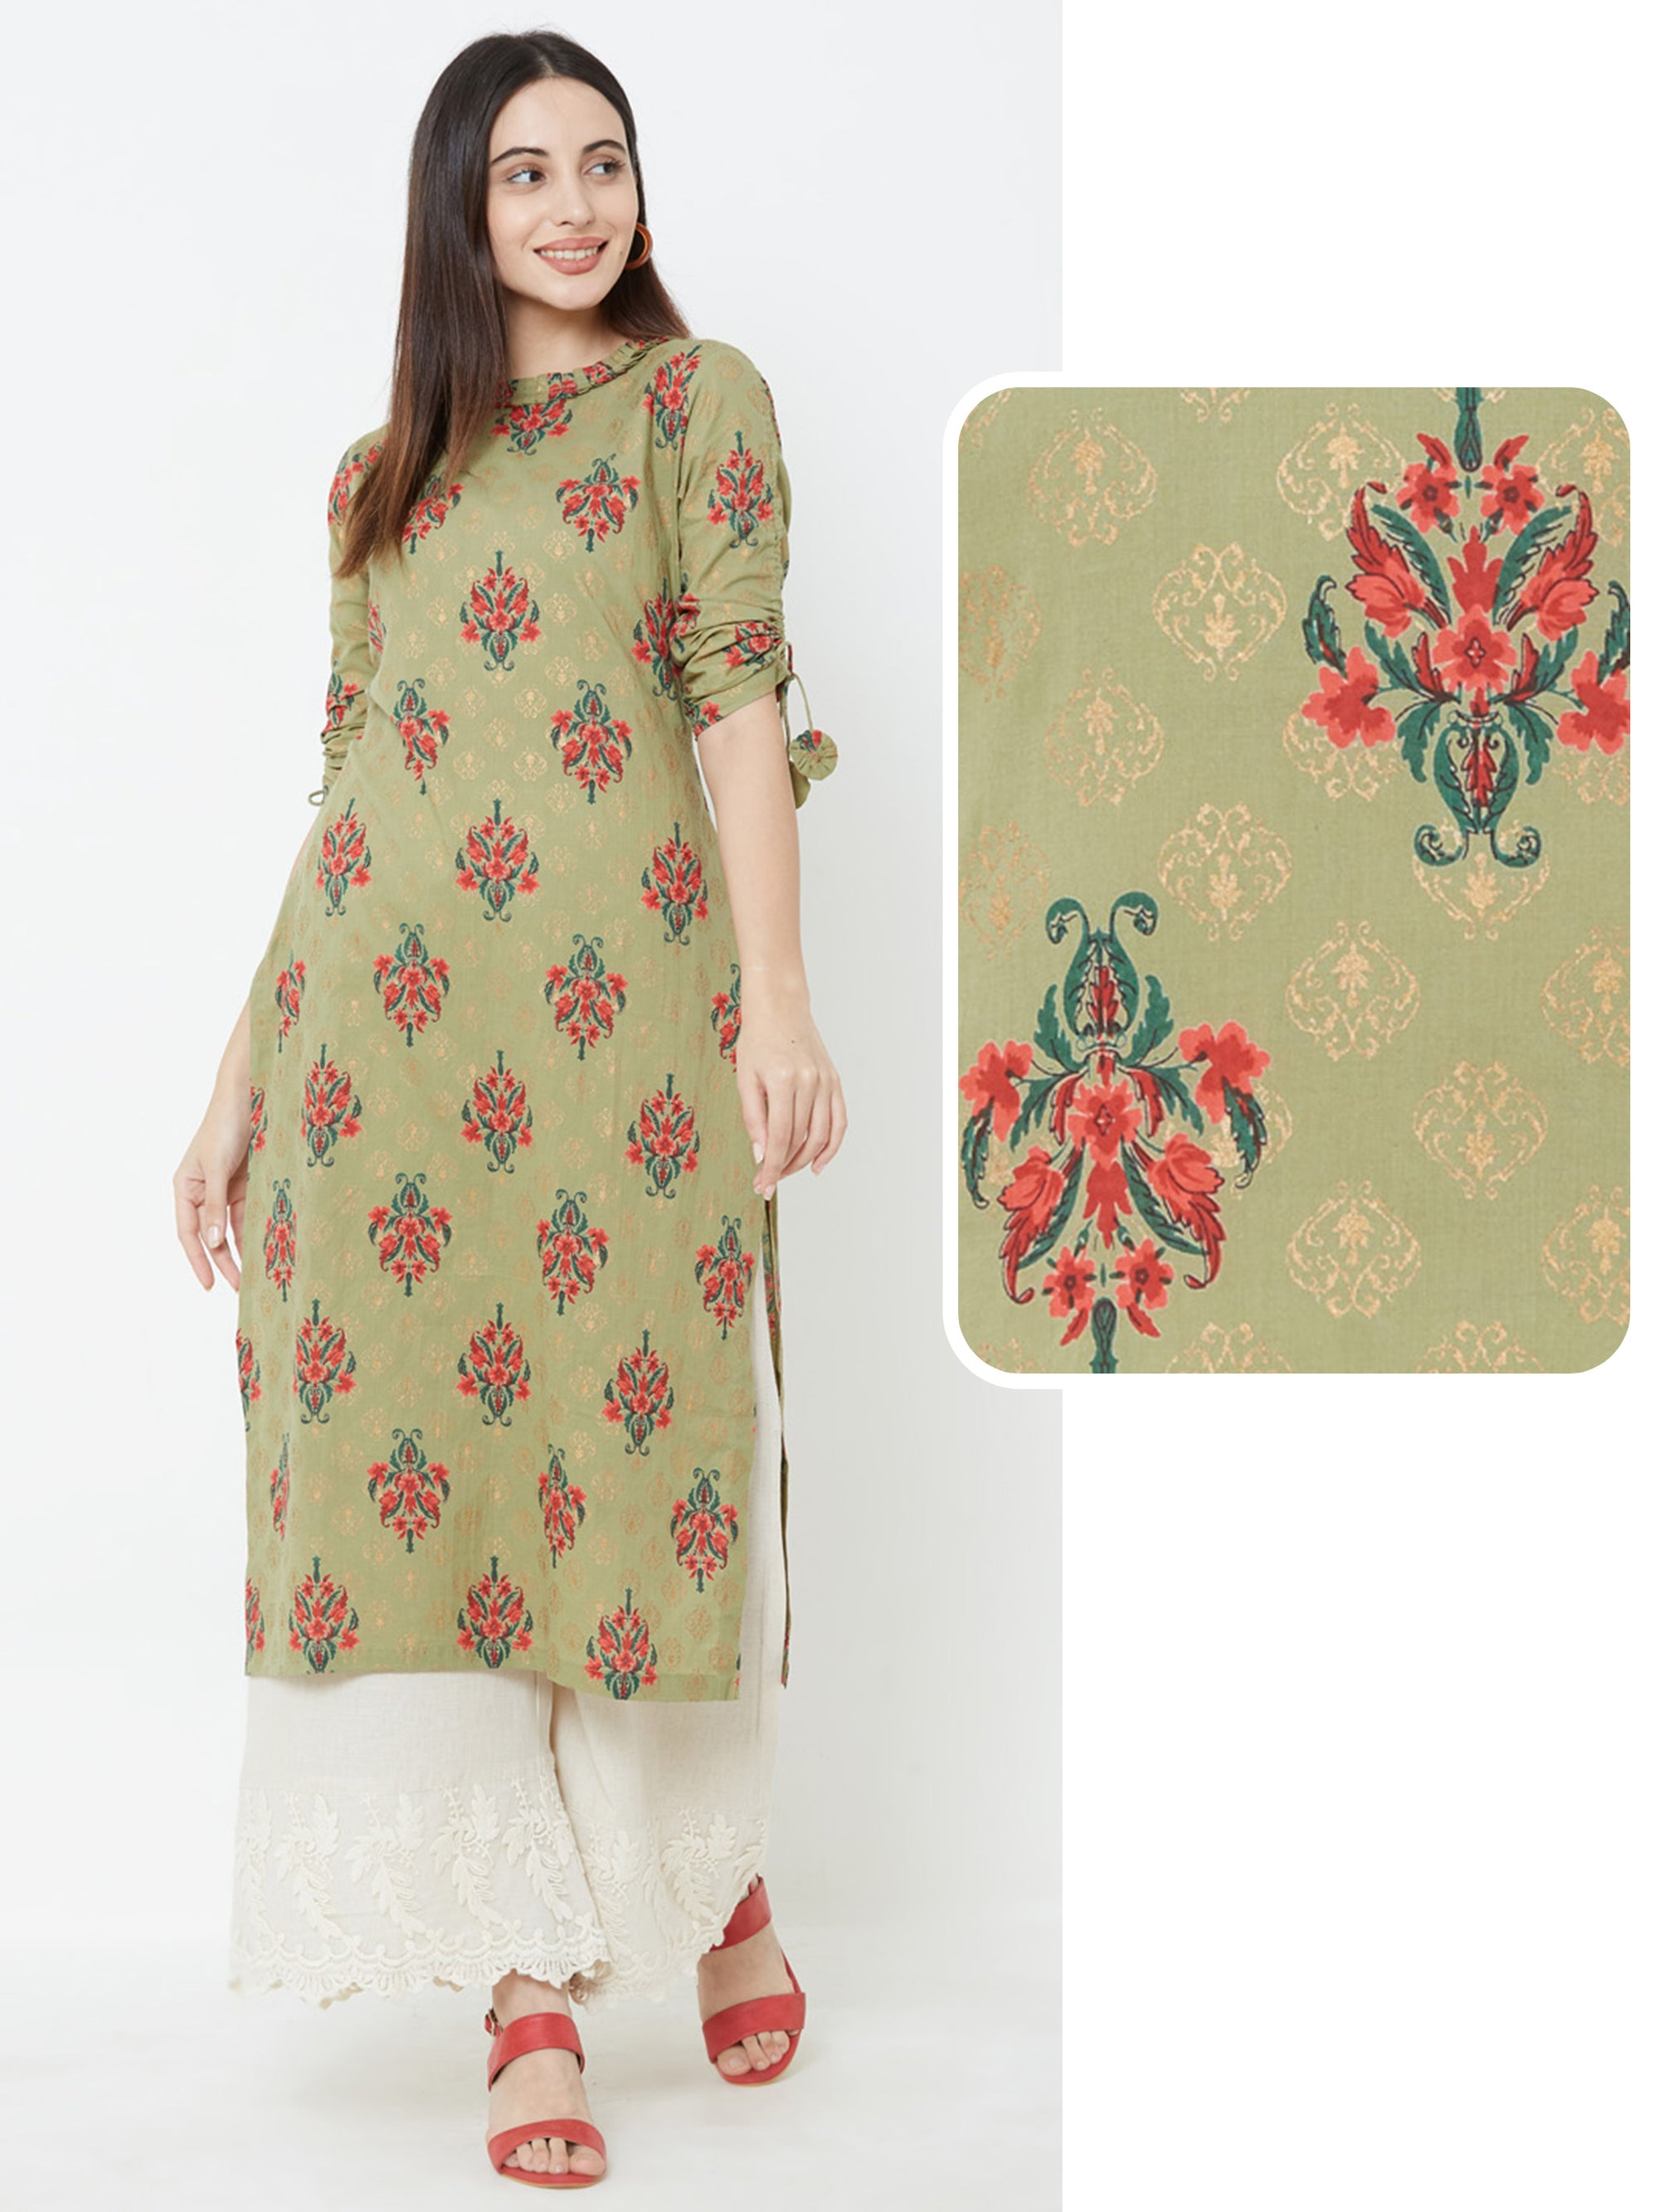 Floral printed Kurta with Tie-Up Sleeves – Olive green